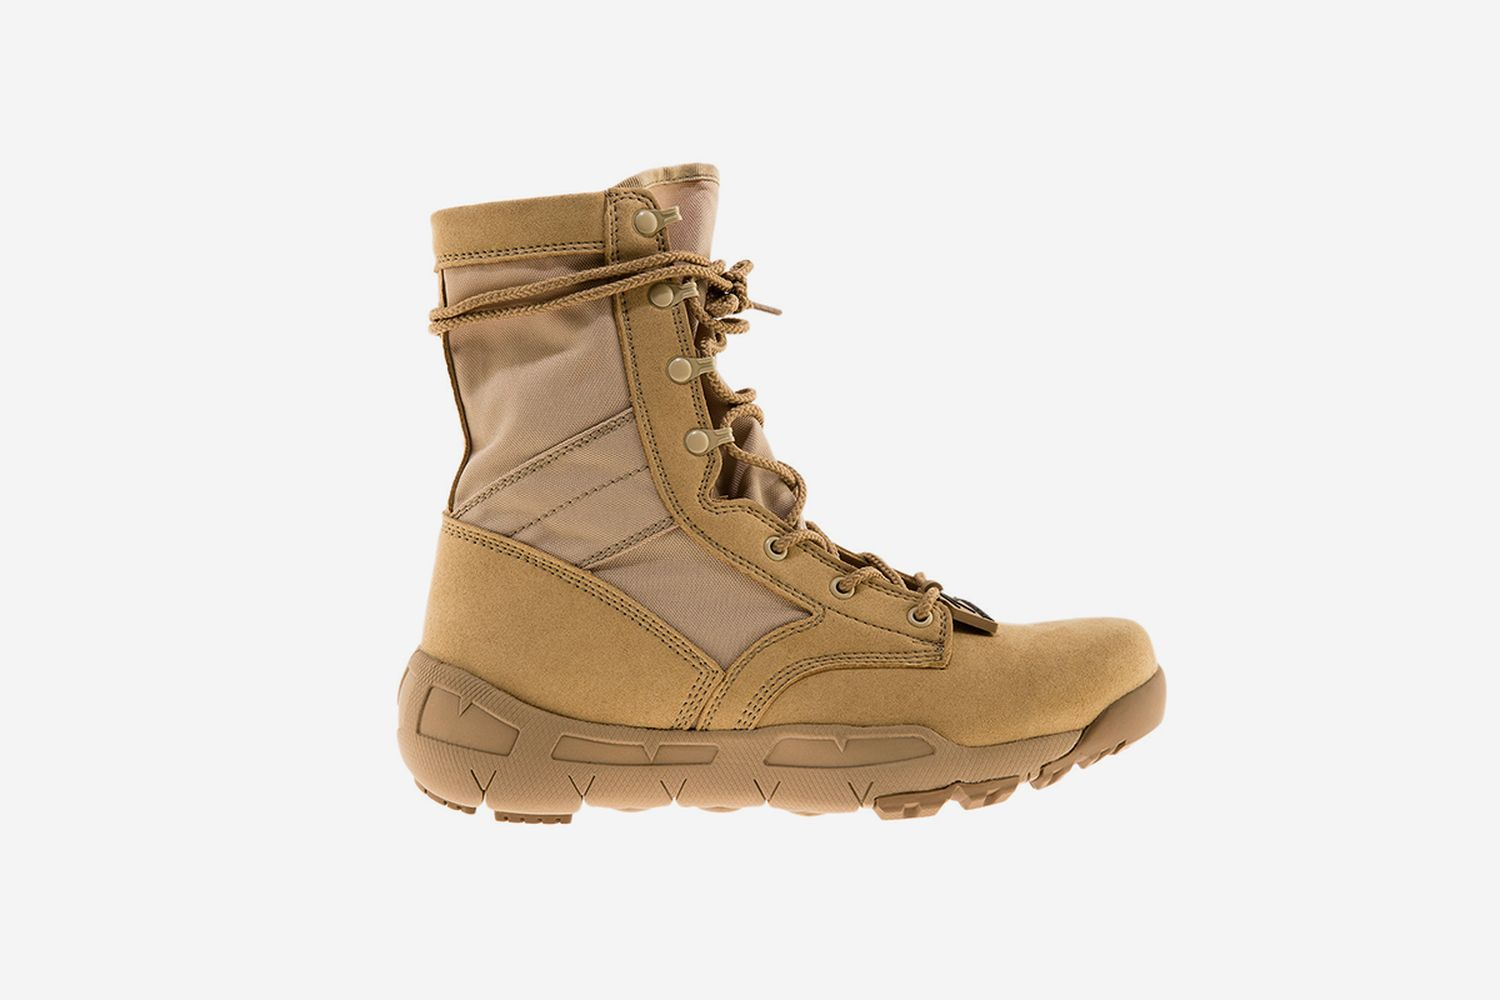 V Max Tactical Combat Boot